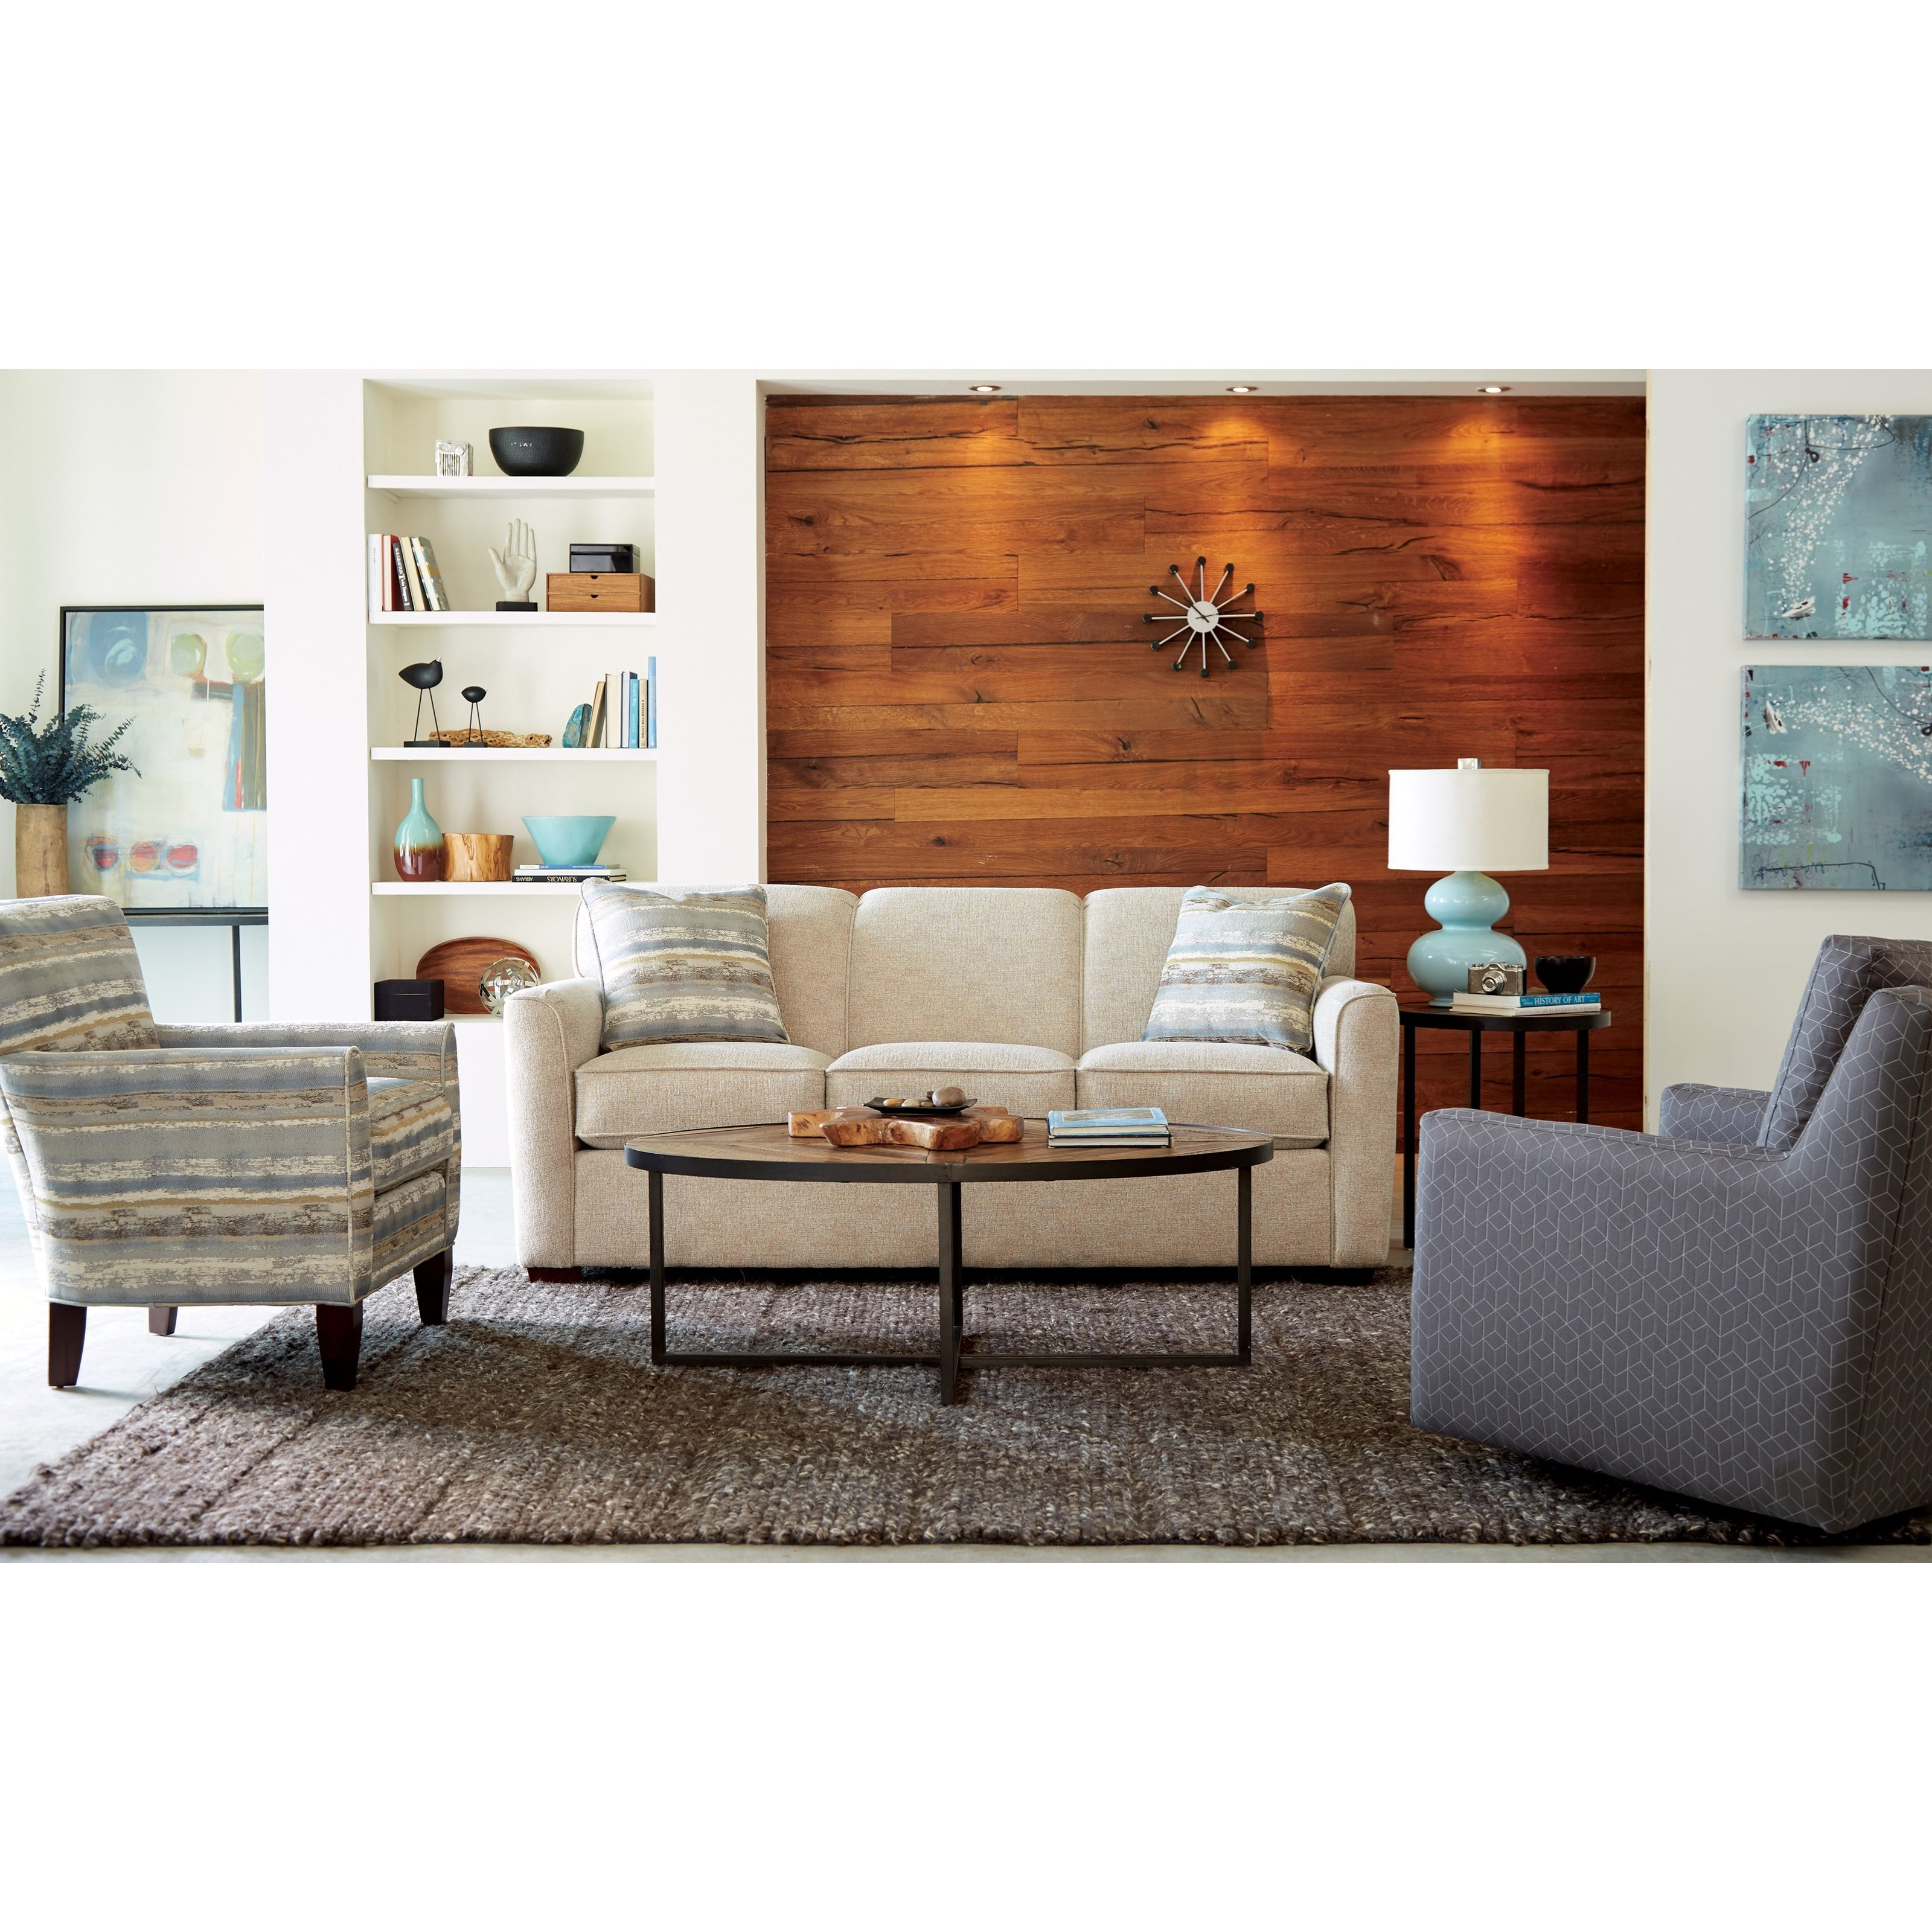 Sofa Mart Accent Chairs: Craftmaster Accent Chairs Accent Chair With Tapered Back